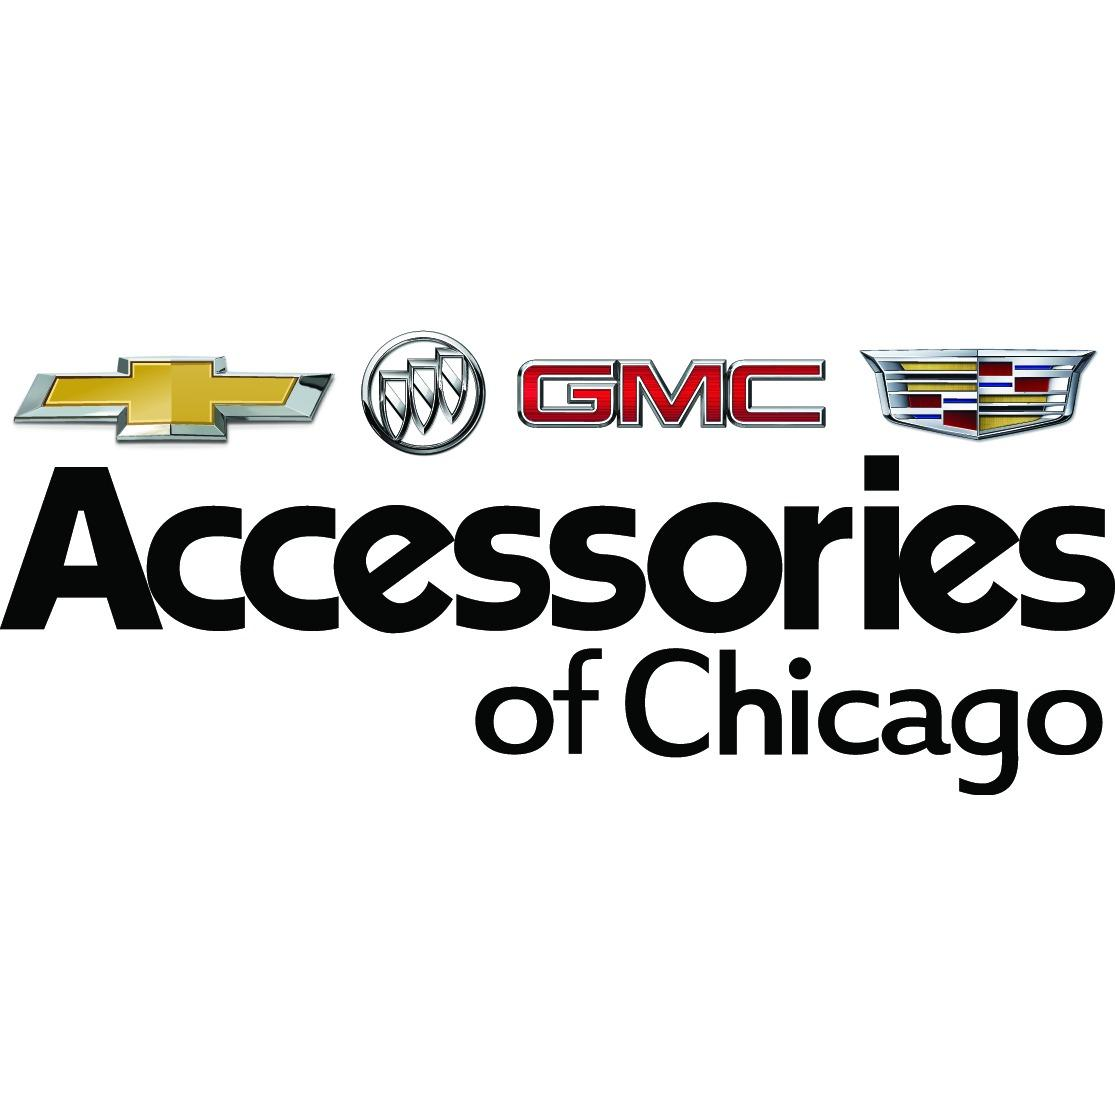 Accessories of Chicago